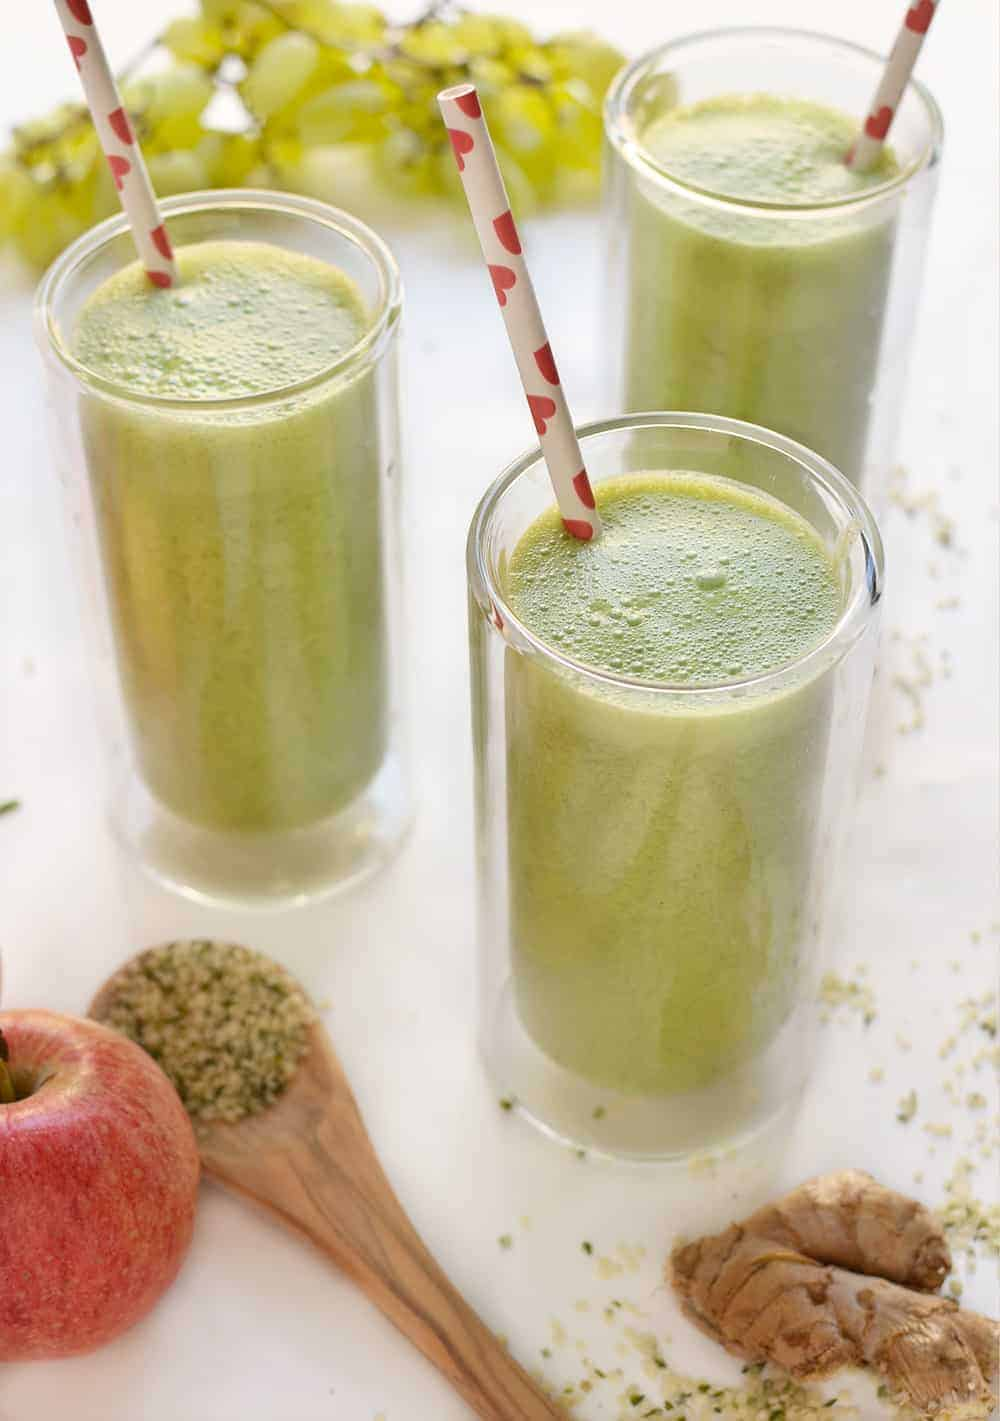 Apple Green Ginger Smoothie! This superfood smoothie is perfect, nutrient dense snack. Take a break from #pumpkineverything with this one! Apple & Ginger, perfect for fall. | www.delishknowledge.com